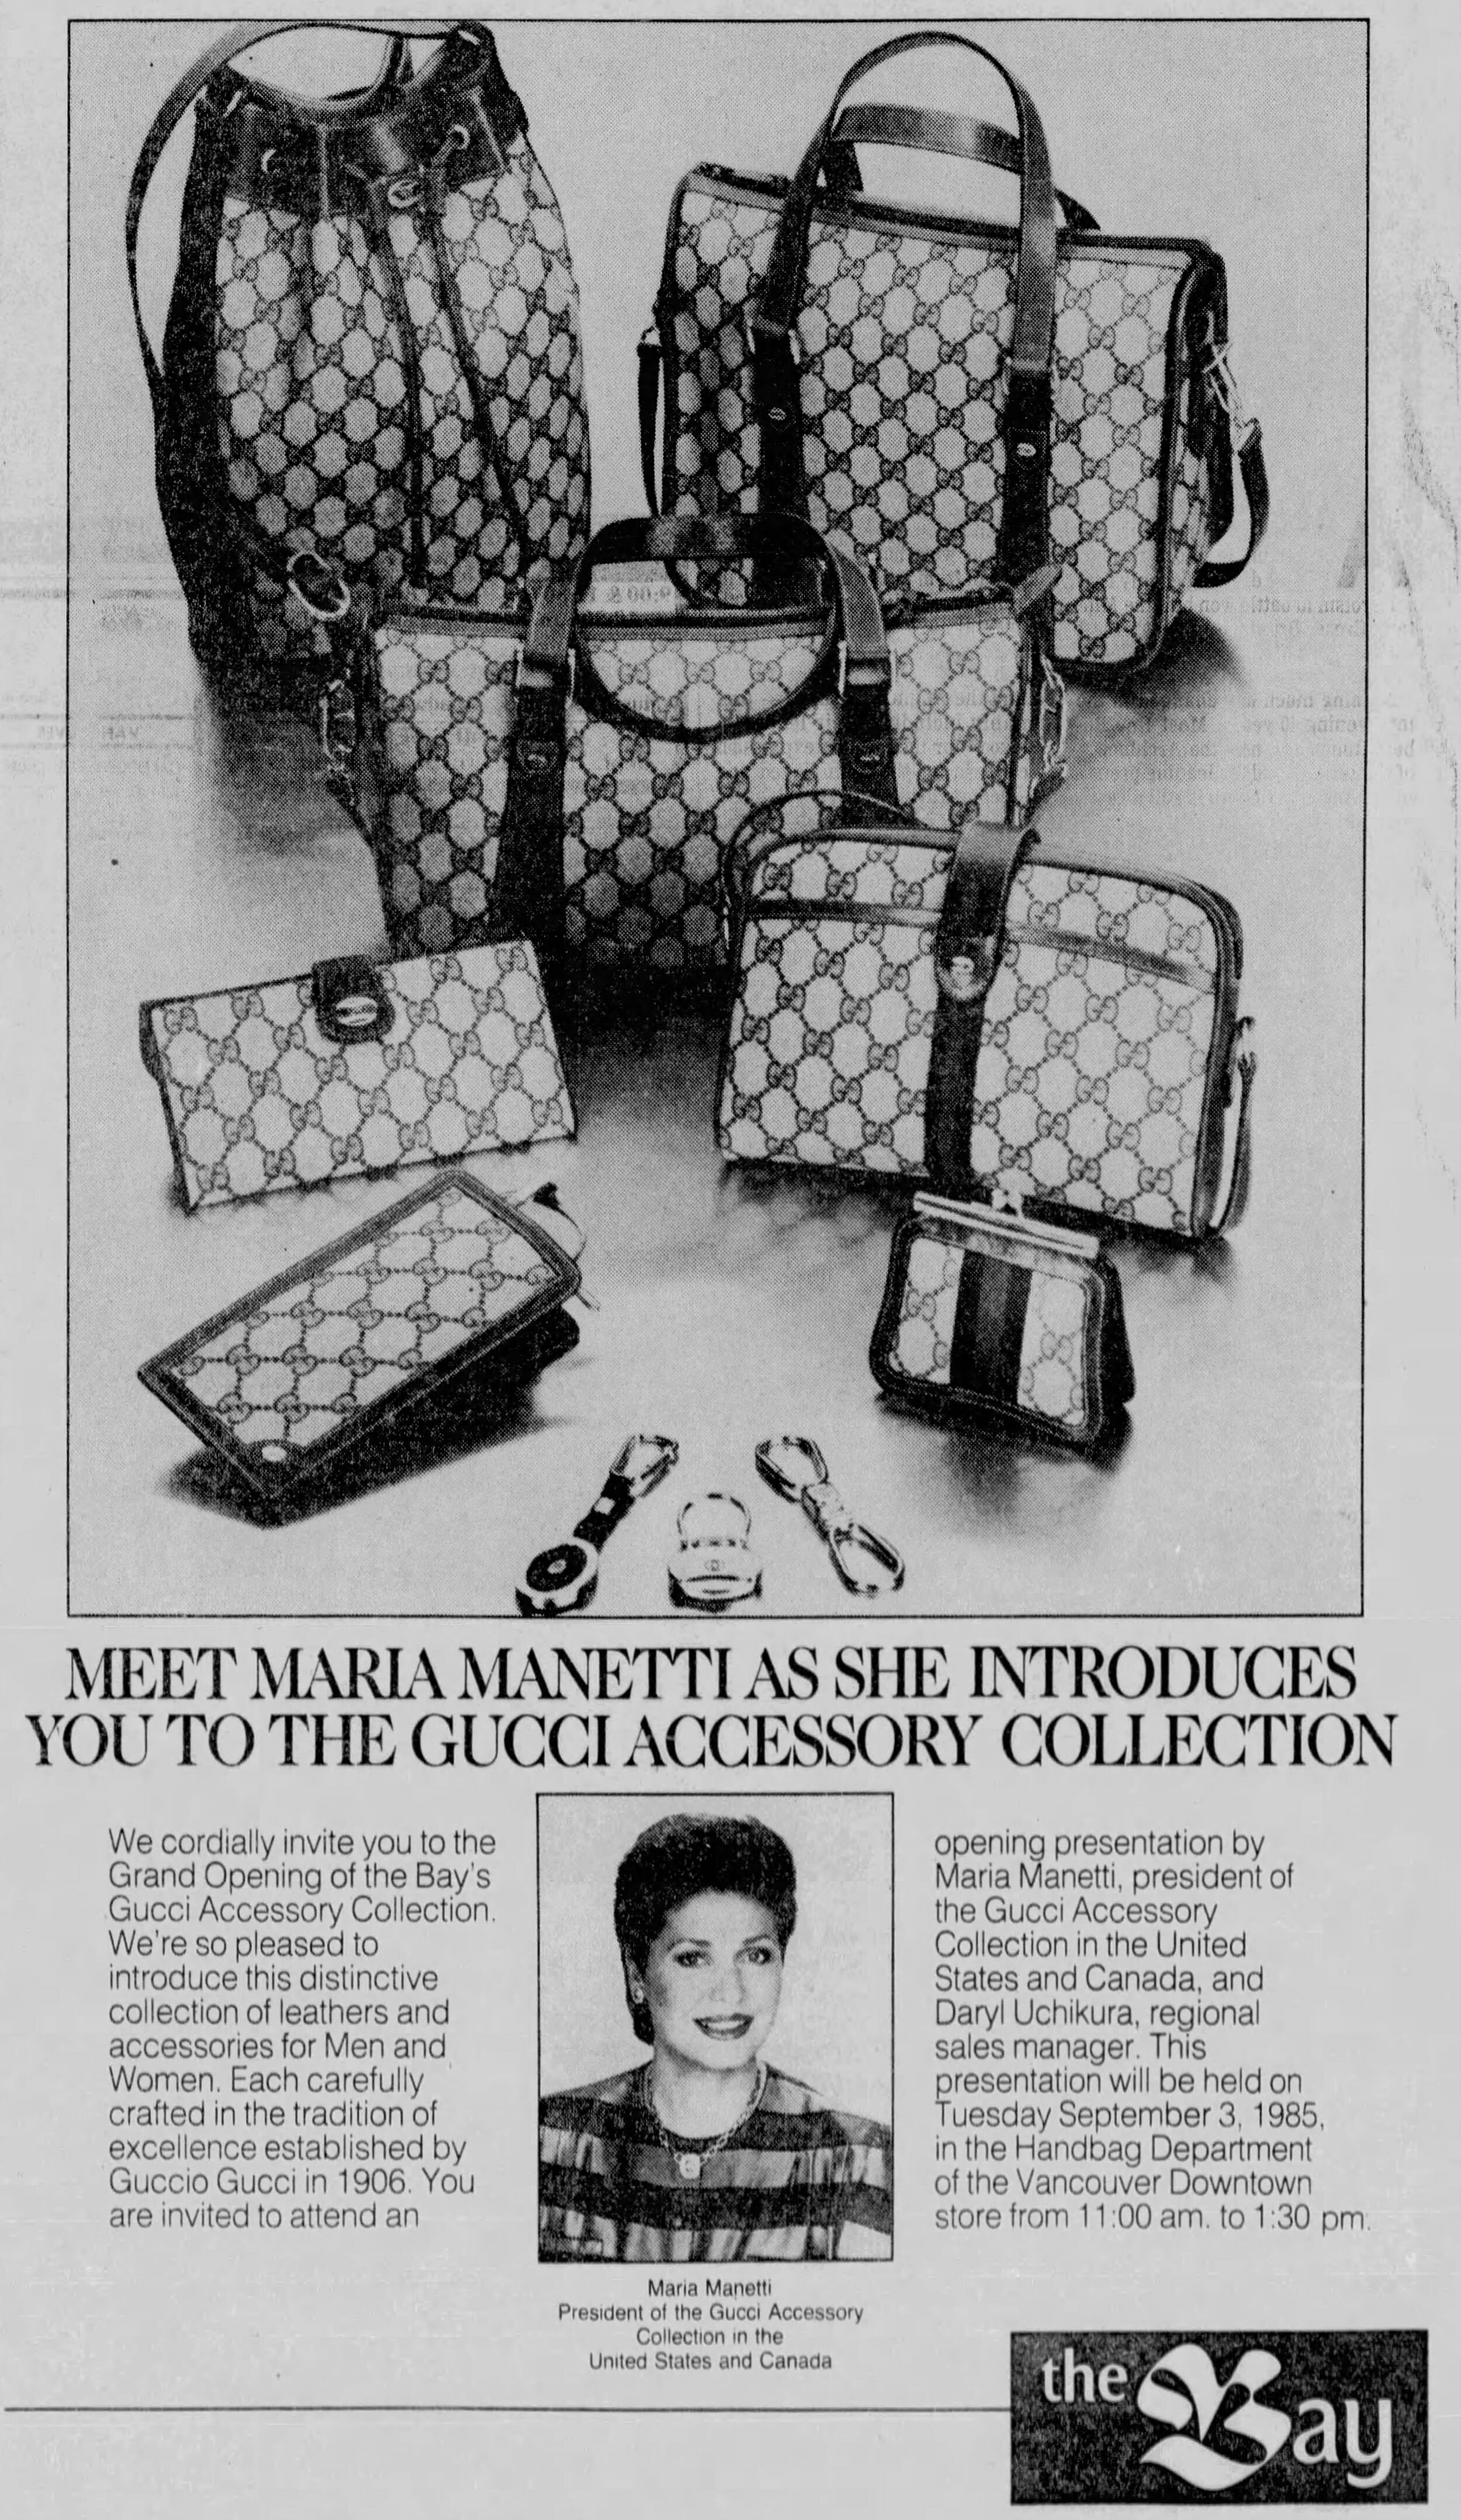 Newspaper clipping from the Vancouver Sun dated August 31, 1985. Image via newspapers.com